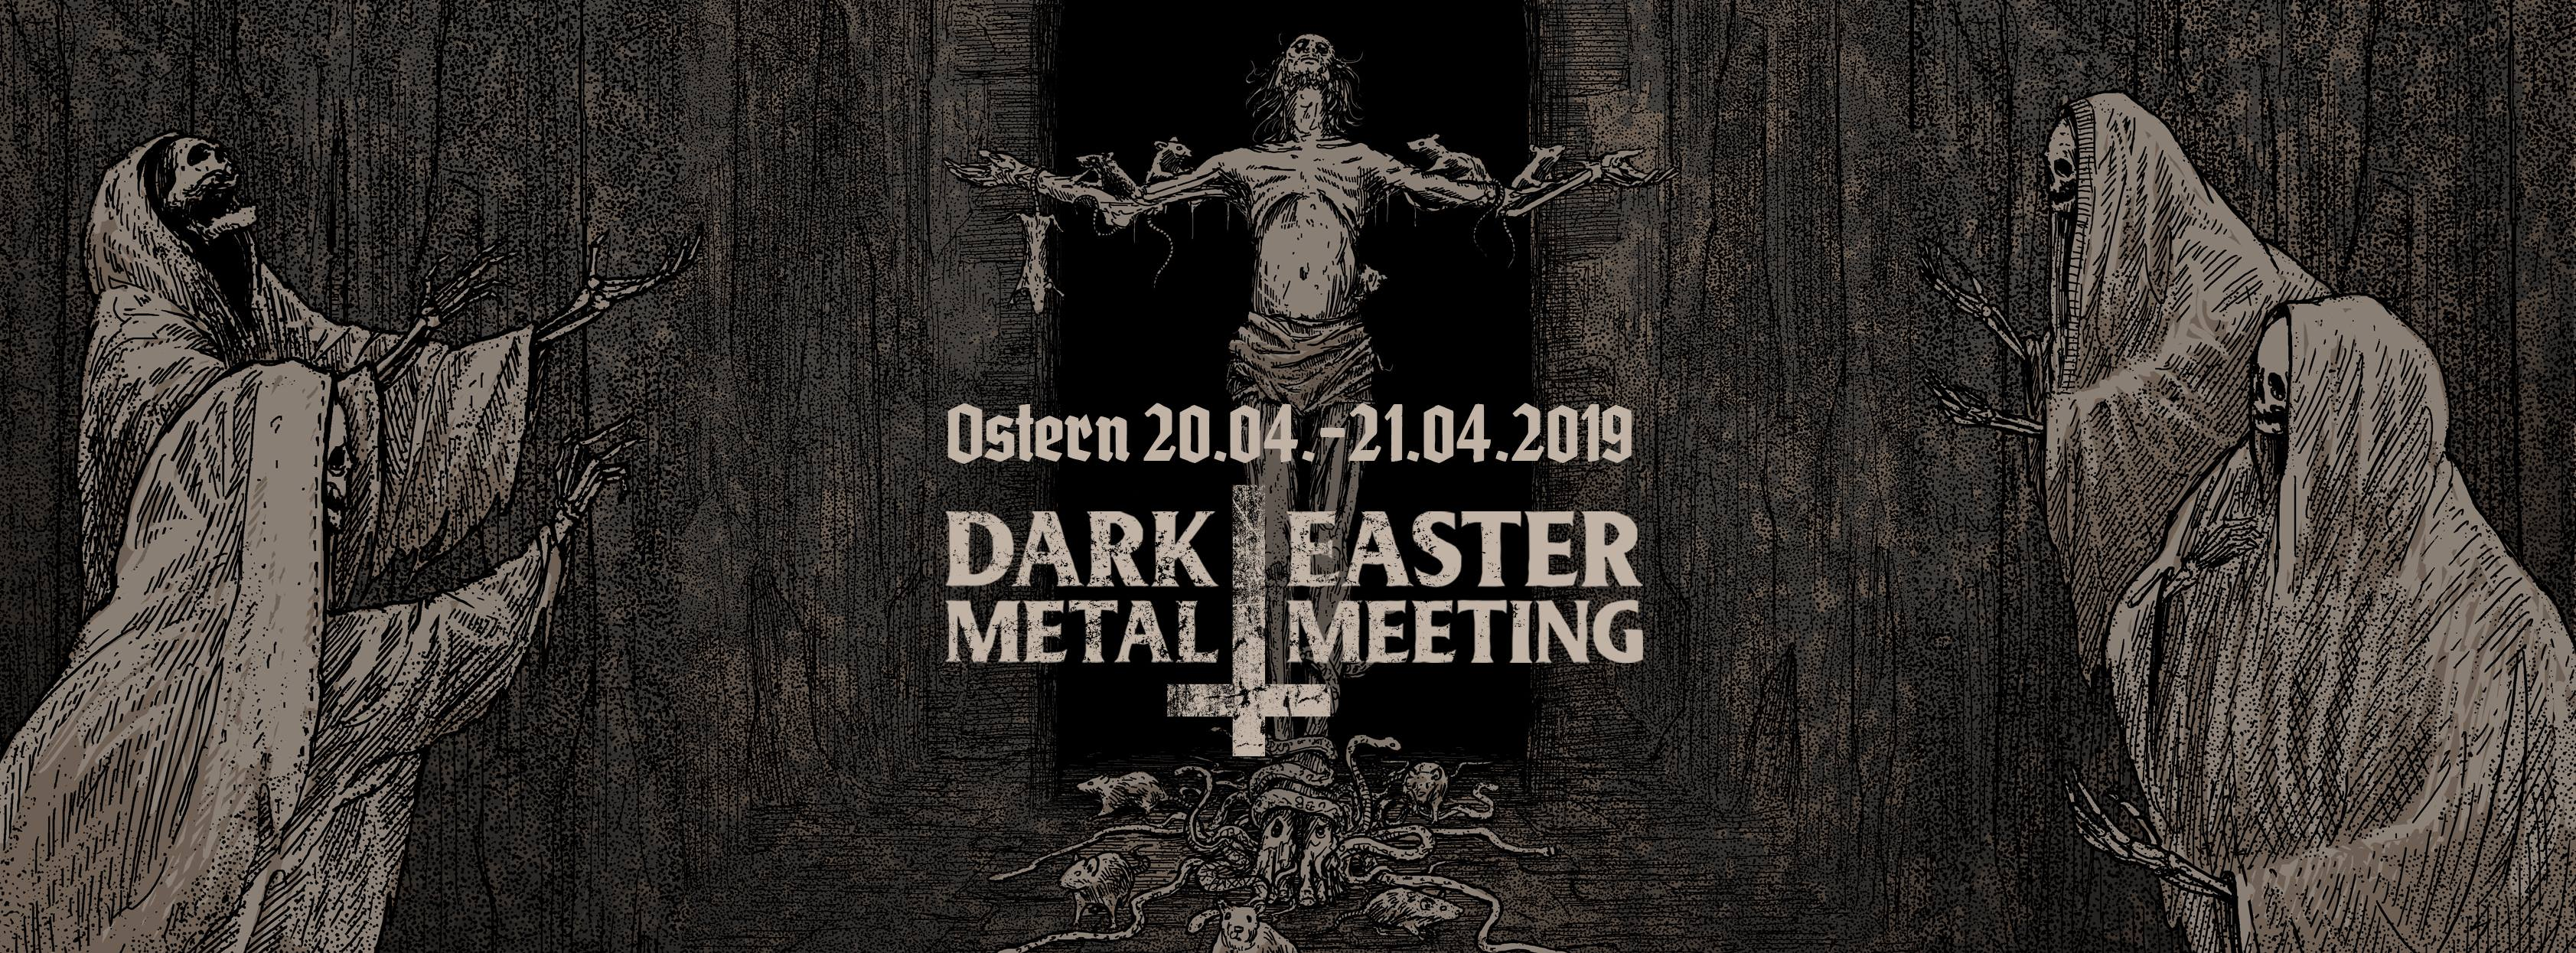 dark-easter-metal-meeting-u-muenchenu-20-i-21-4-2019